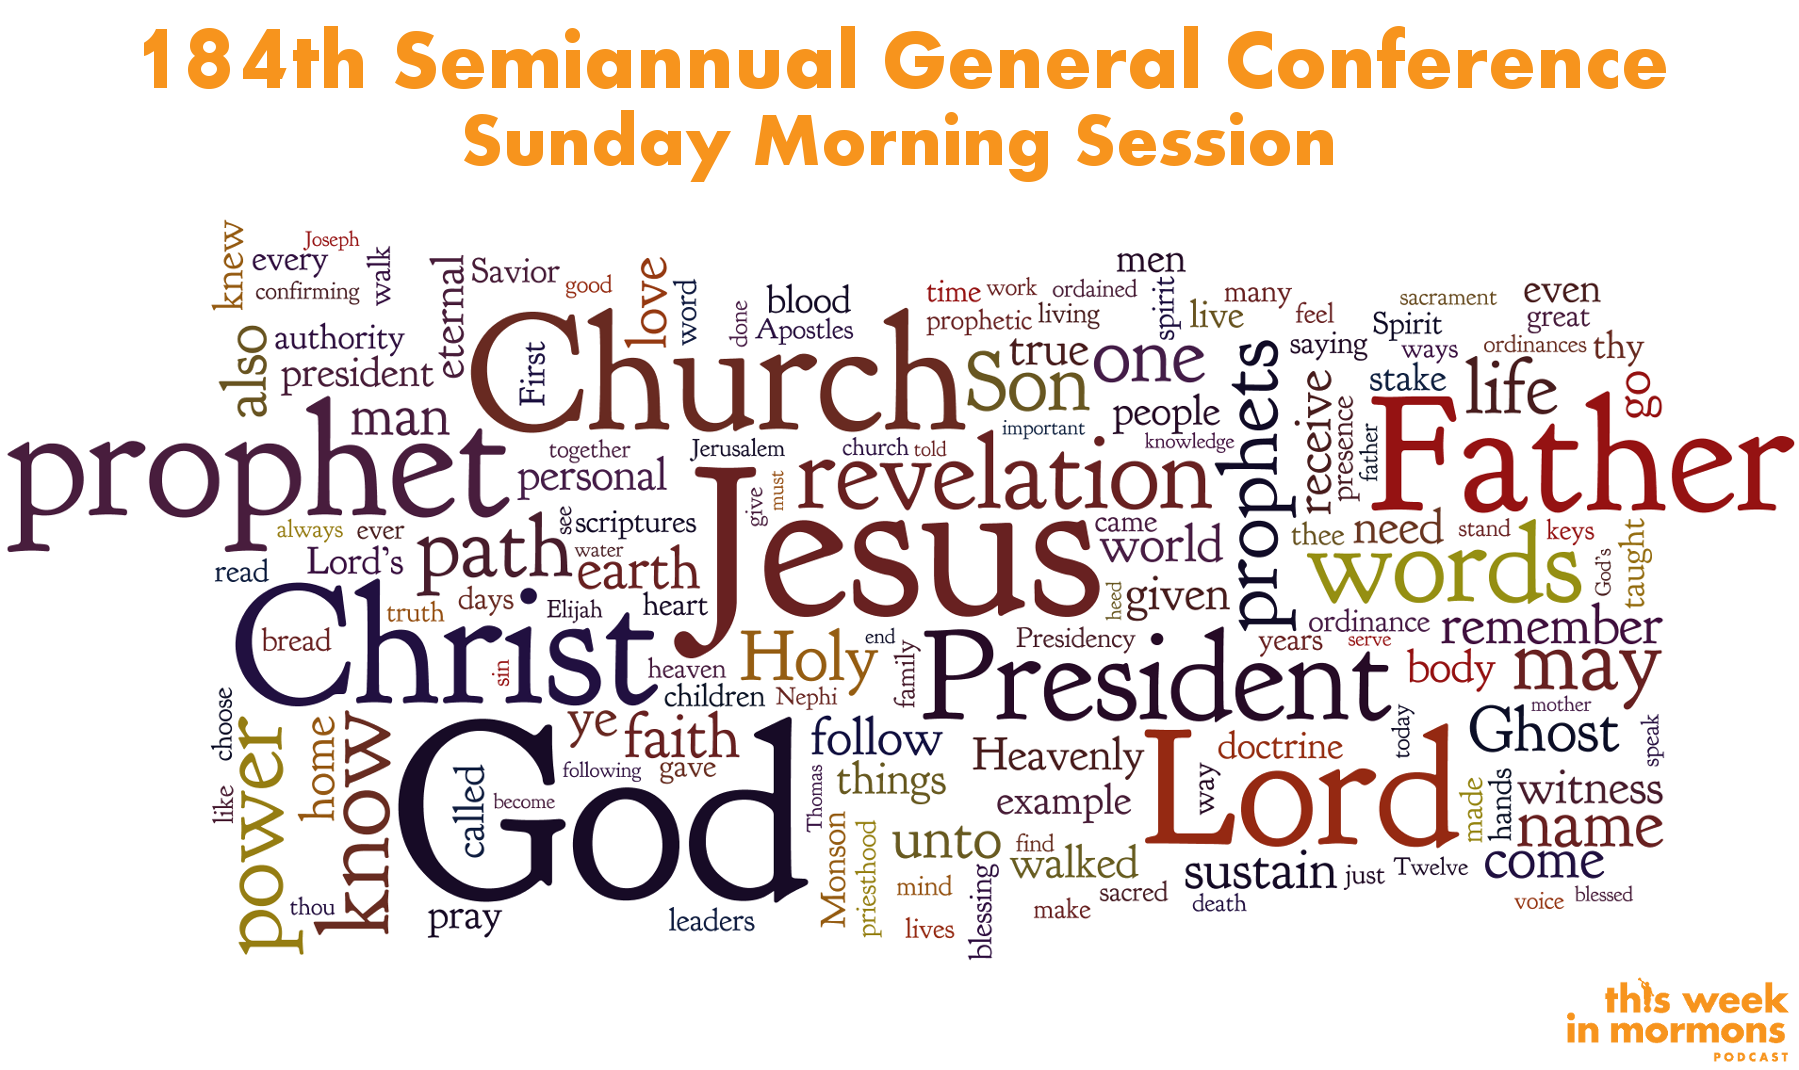 Sunday Morning SessionLDSCONF2014